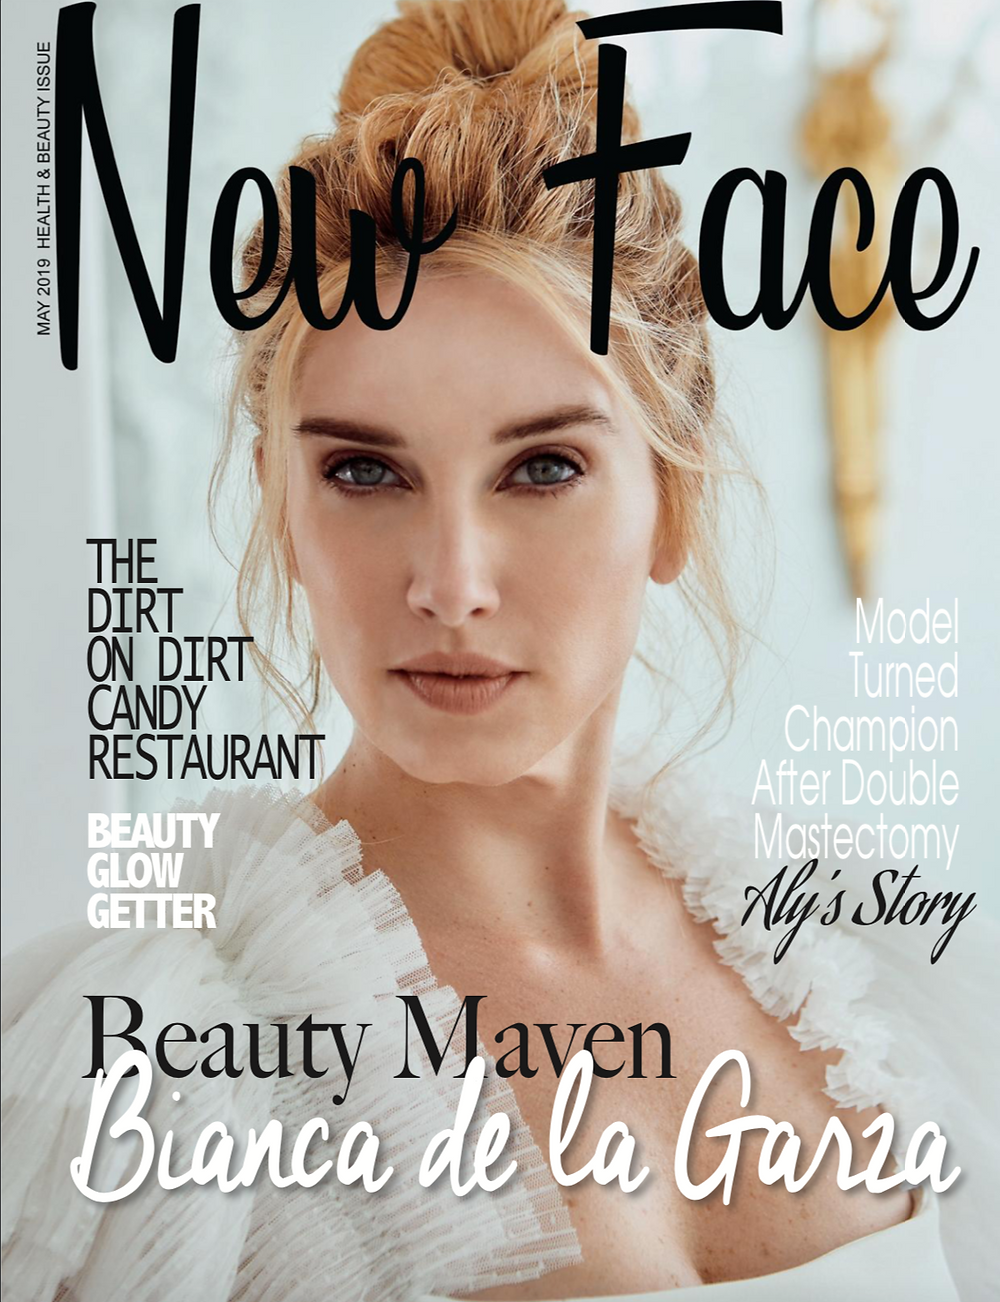 Bianca de la Garza on the cover of New Face Magzine May 2019 by L.A. photographer Patrick Patton Photography.  Bianca is modelling in a pretty white dress for her new beauty products line in GLO we trust